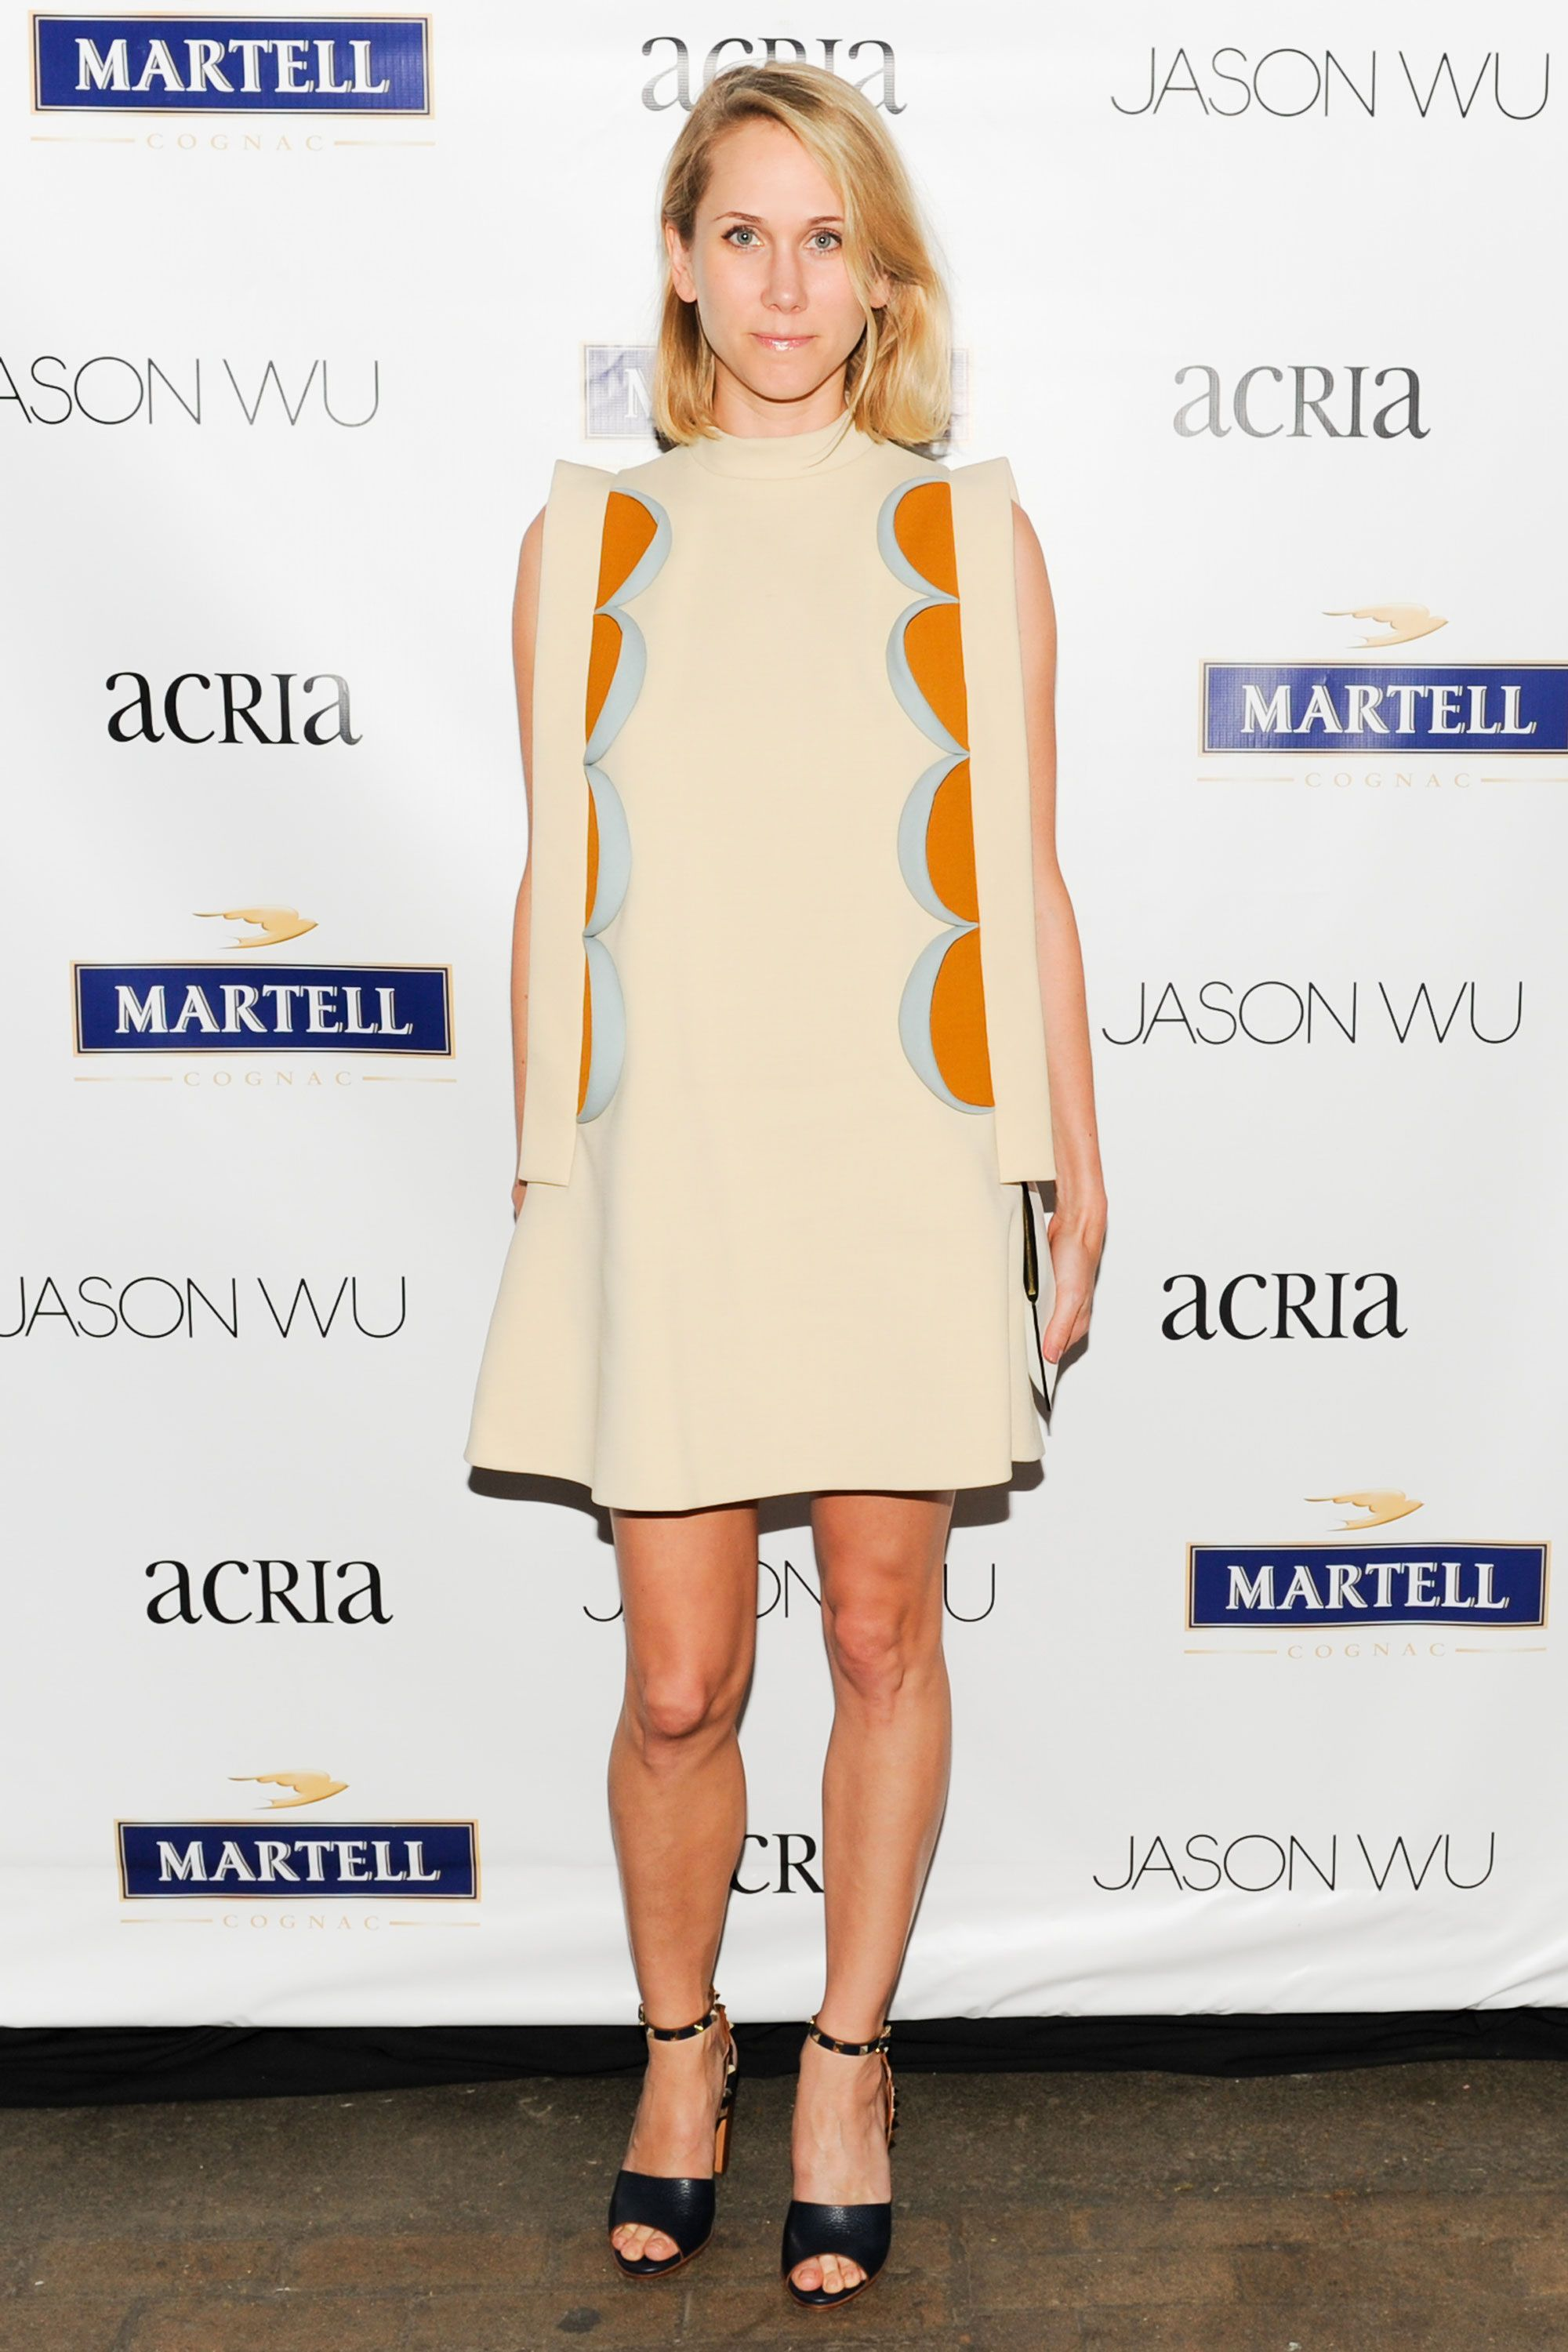 The Best Looks From Jason WU ACRIA Dinner